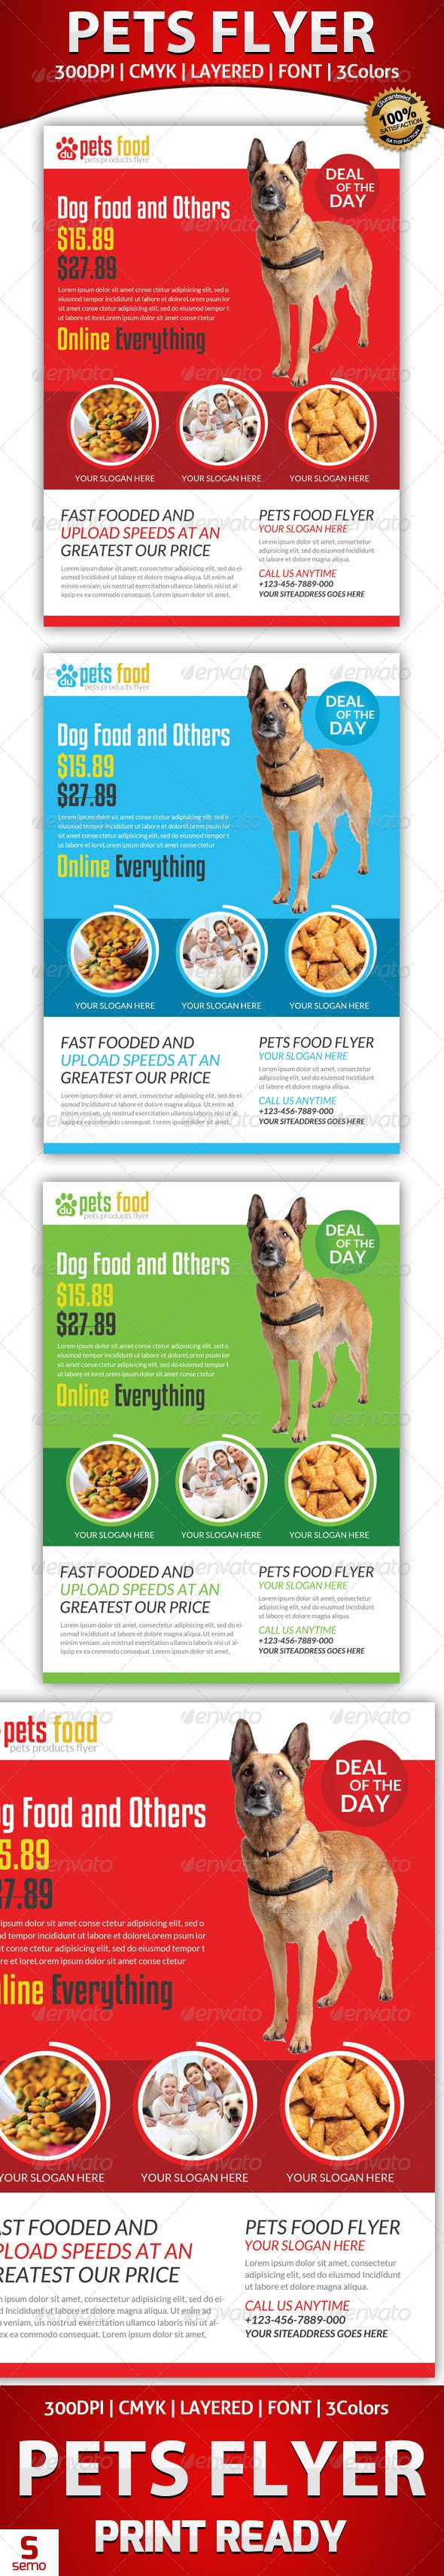 best ideas about store flyers flyer design pets store flyer template graphicriver pets store flyer template photos links are included in the